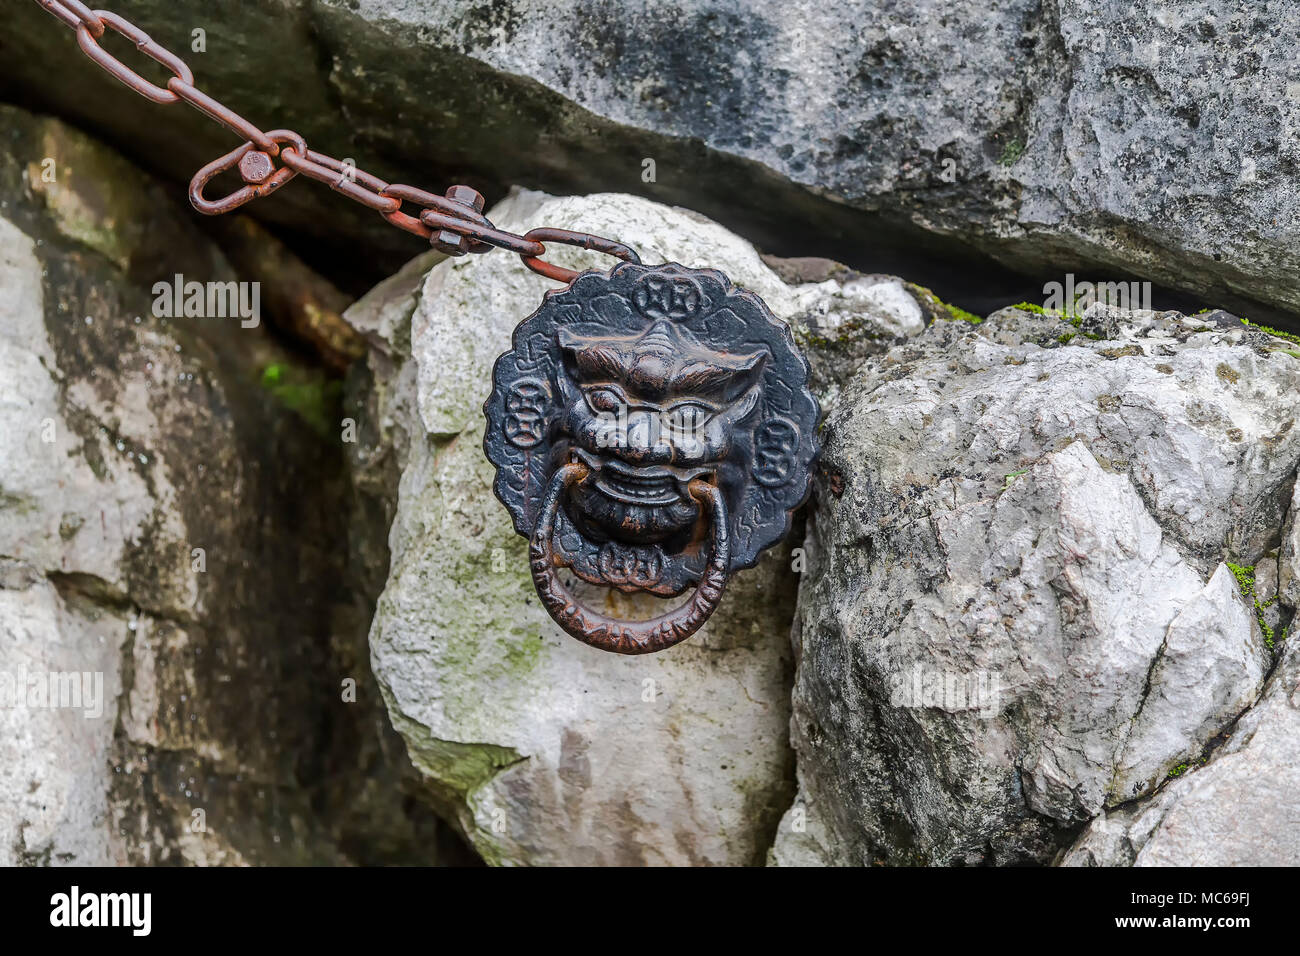 A traditional Chinese metal lion head is attached to a chain and the steep rock face of the Solitary Beauty Peak. Guilin, China. - Stock Image